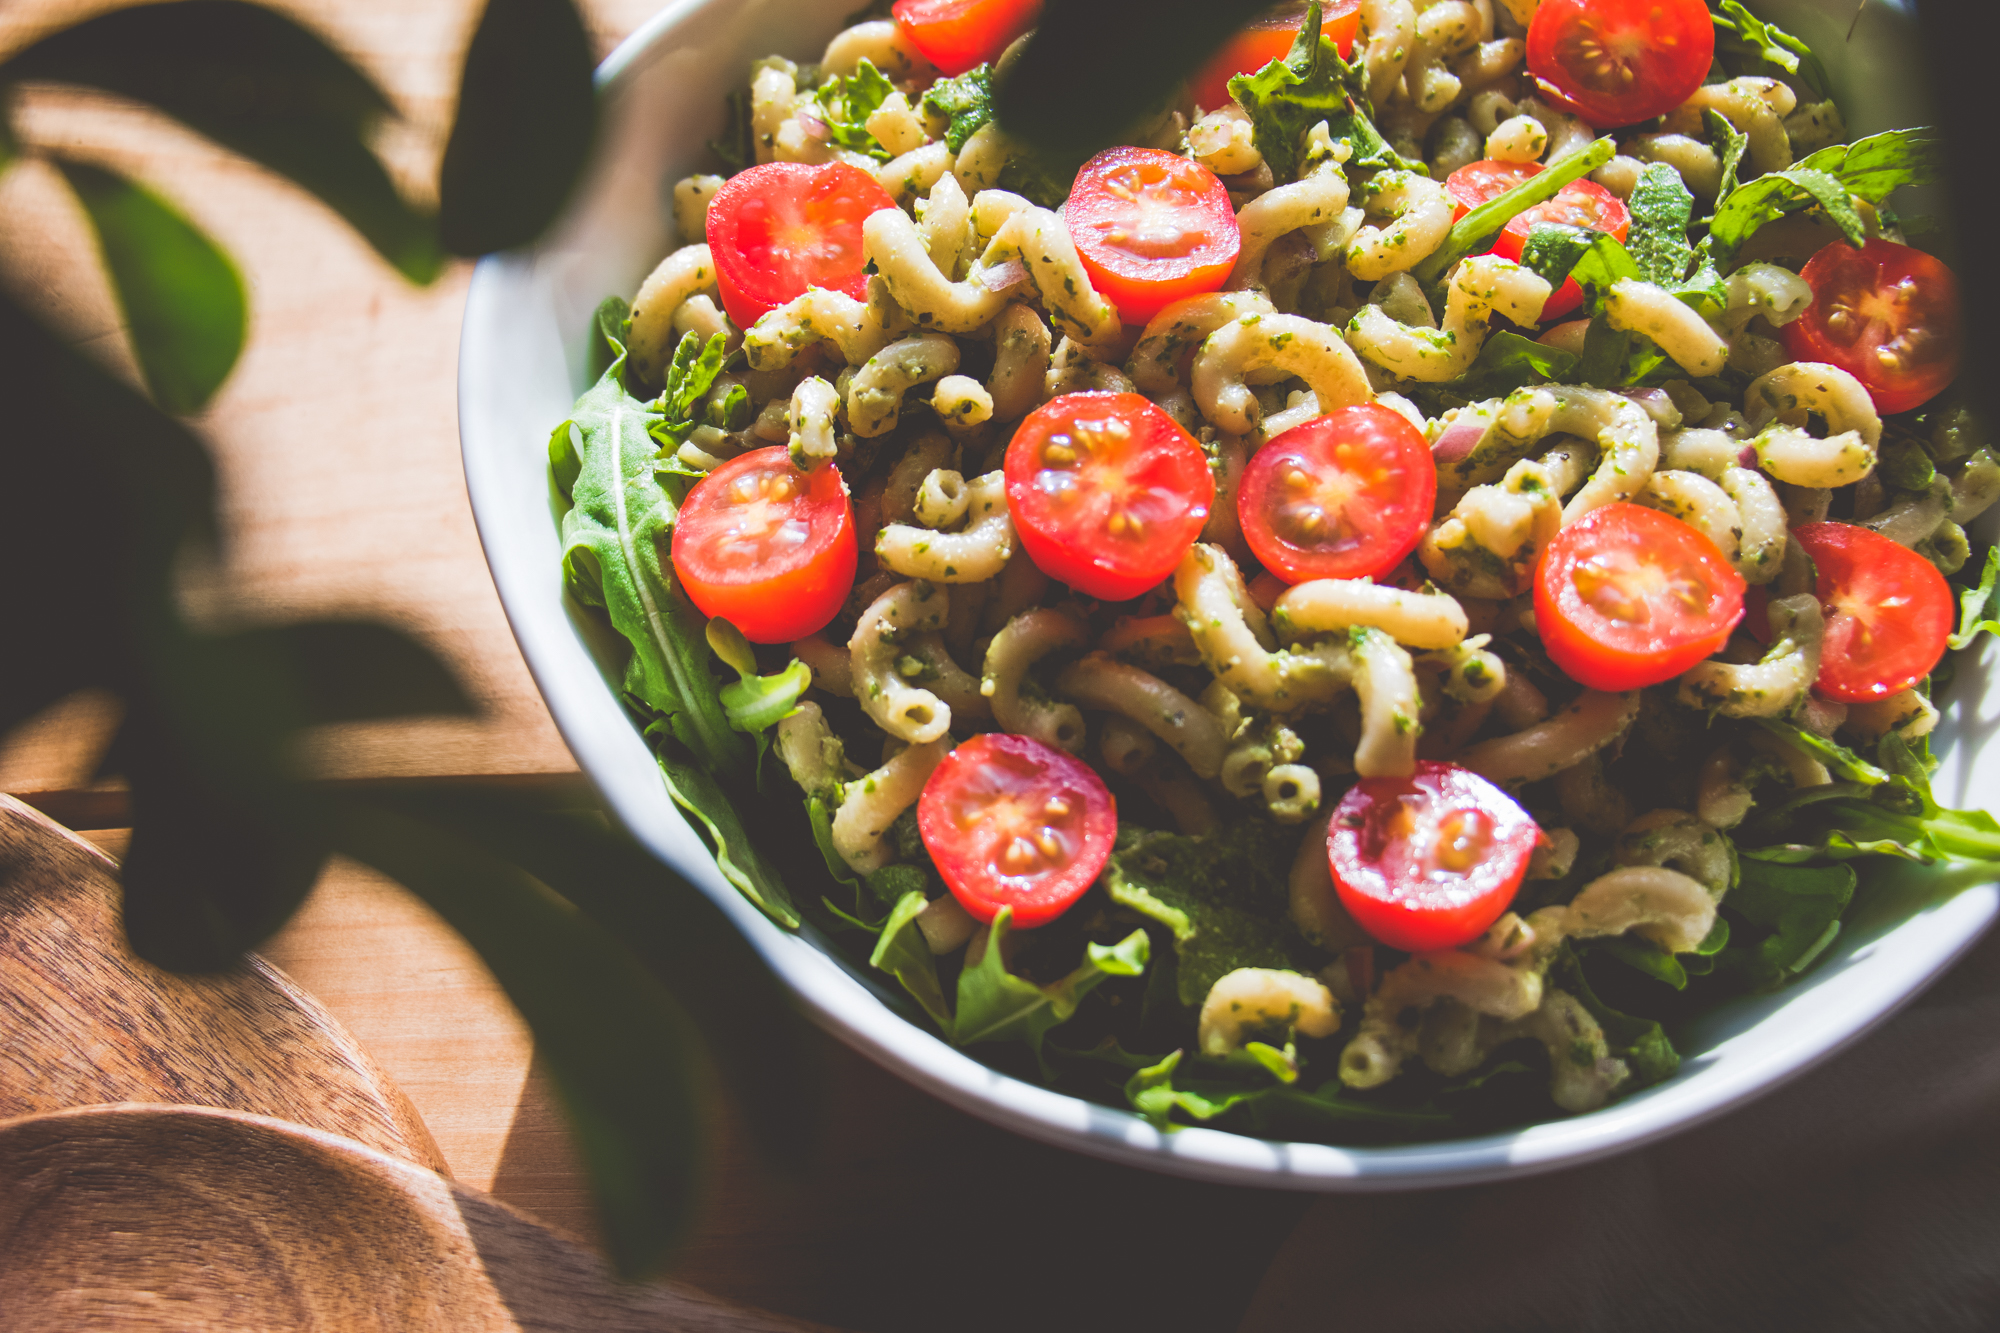 Avocado Pesto Pasta Salad